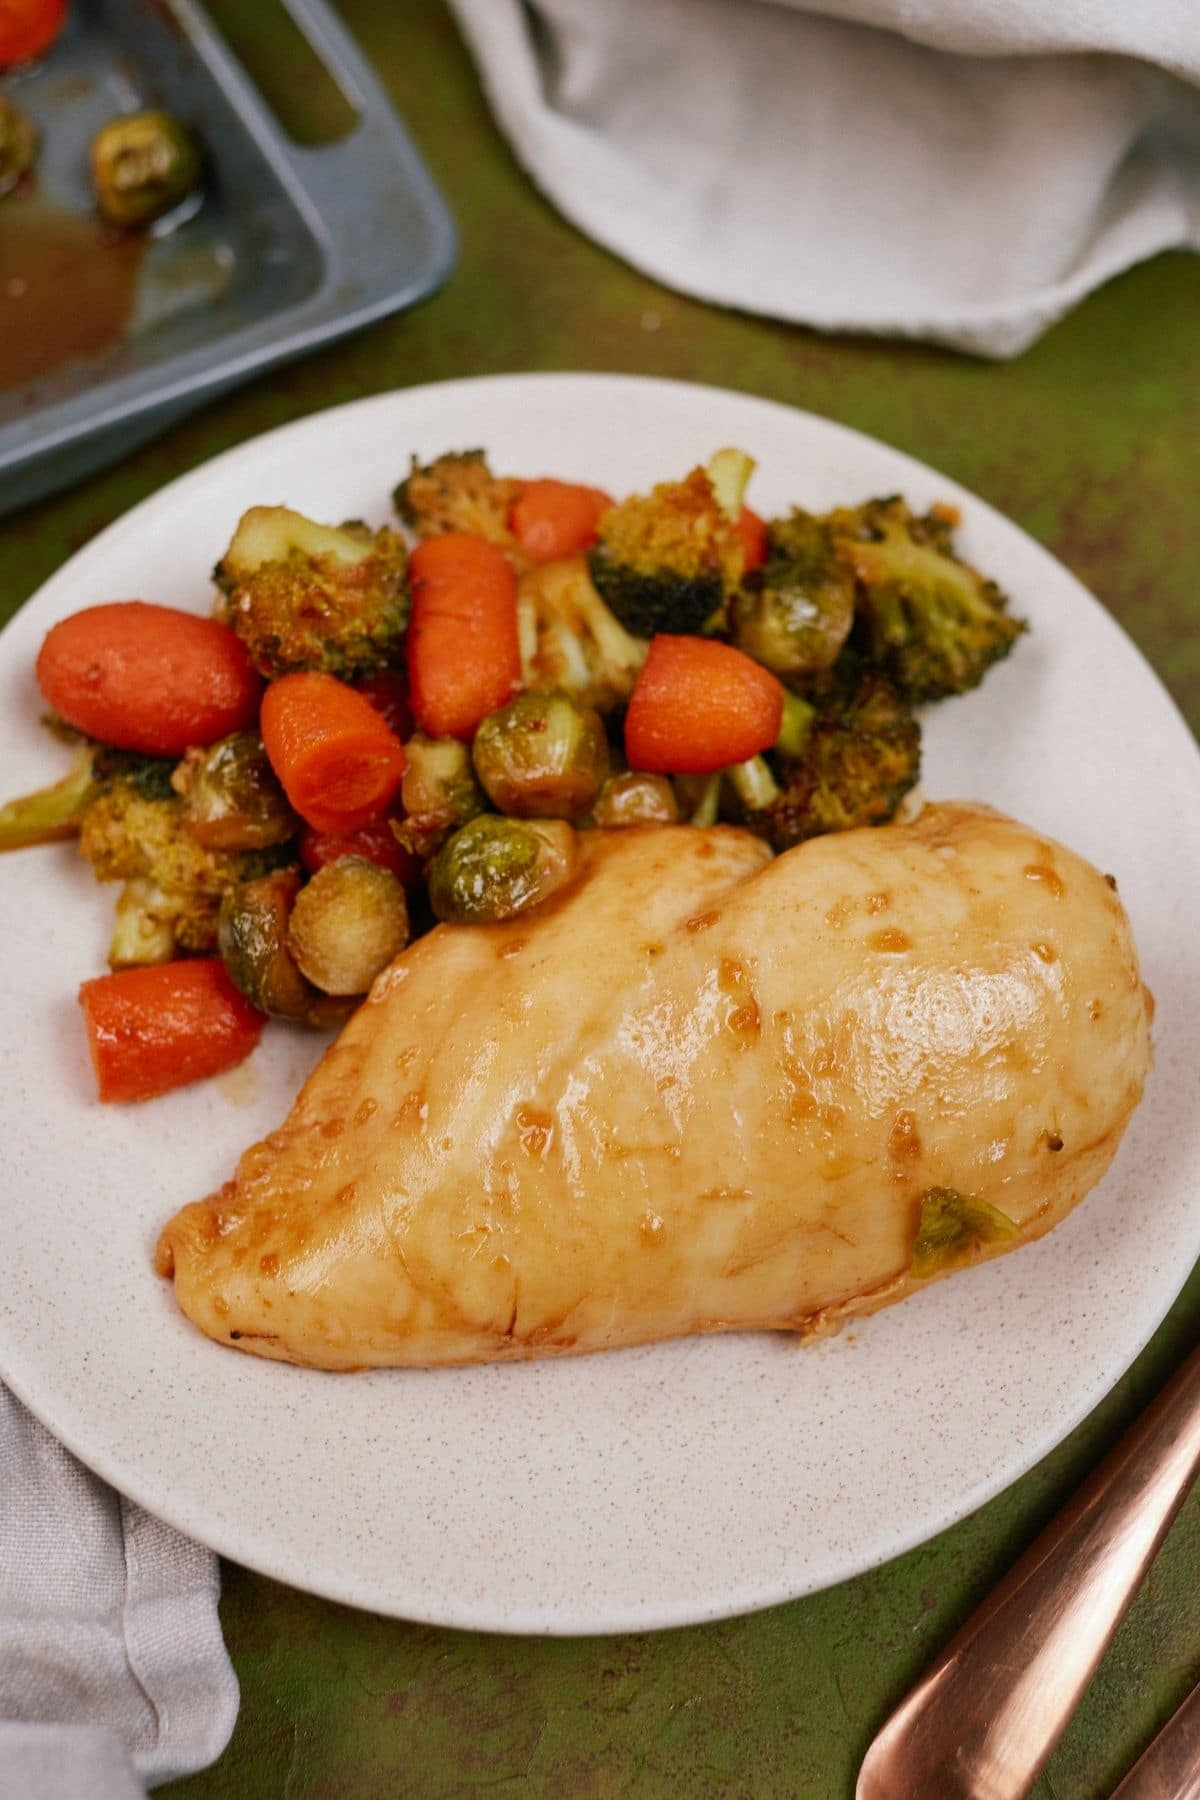 White plate with chicken breast and vegetables on green tablecloth